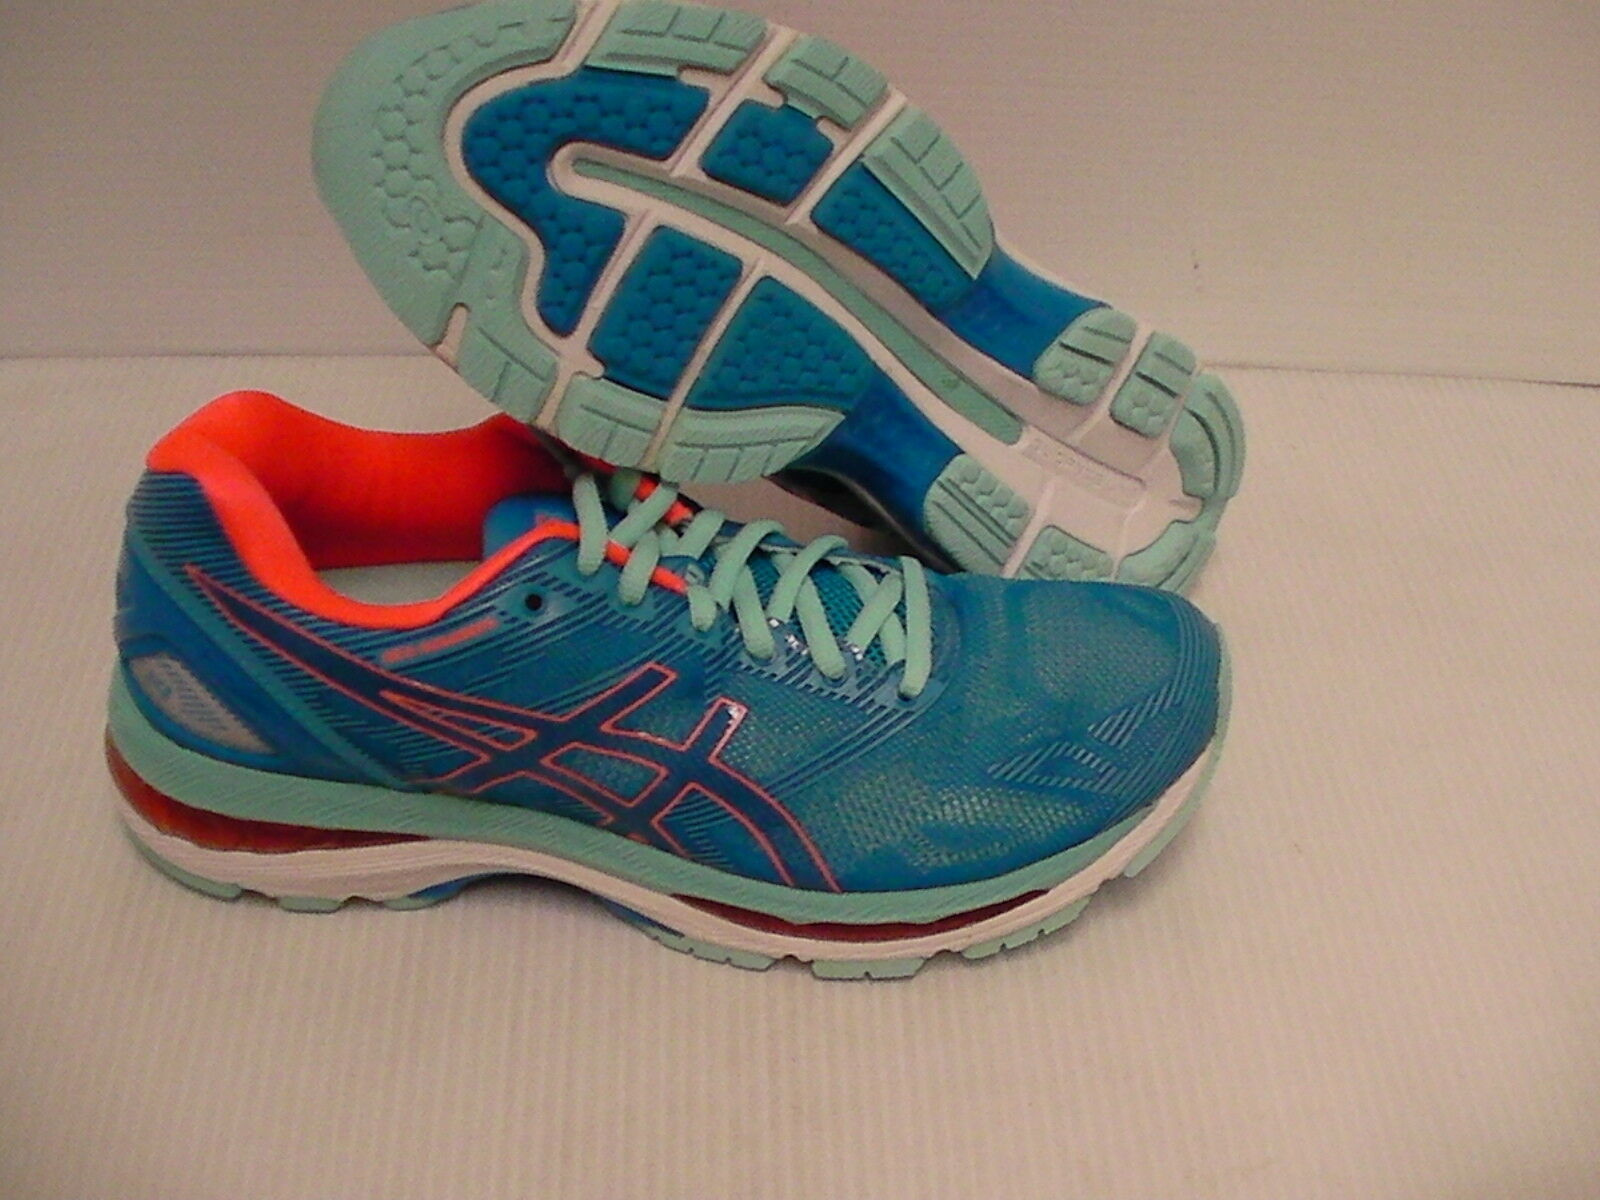 Asics women's gel nimbus 19 running shoes diva blue flash coral size 10 us Casual wild